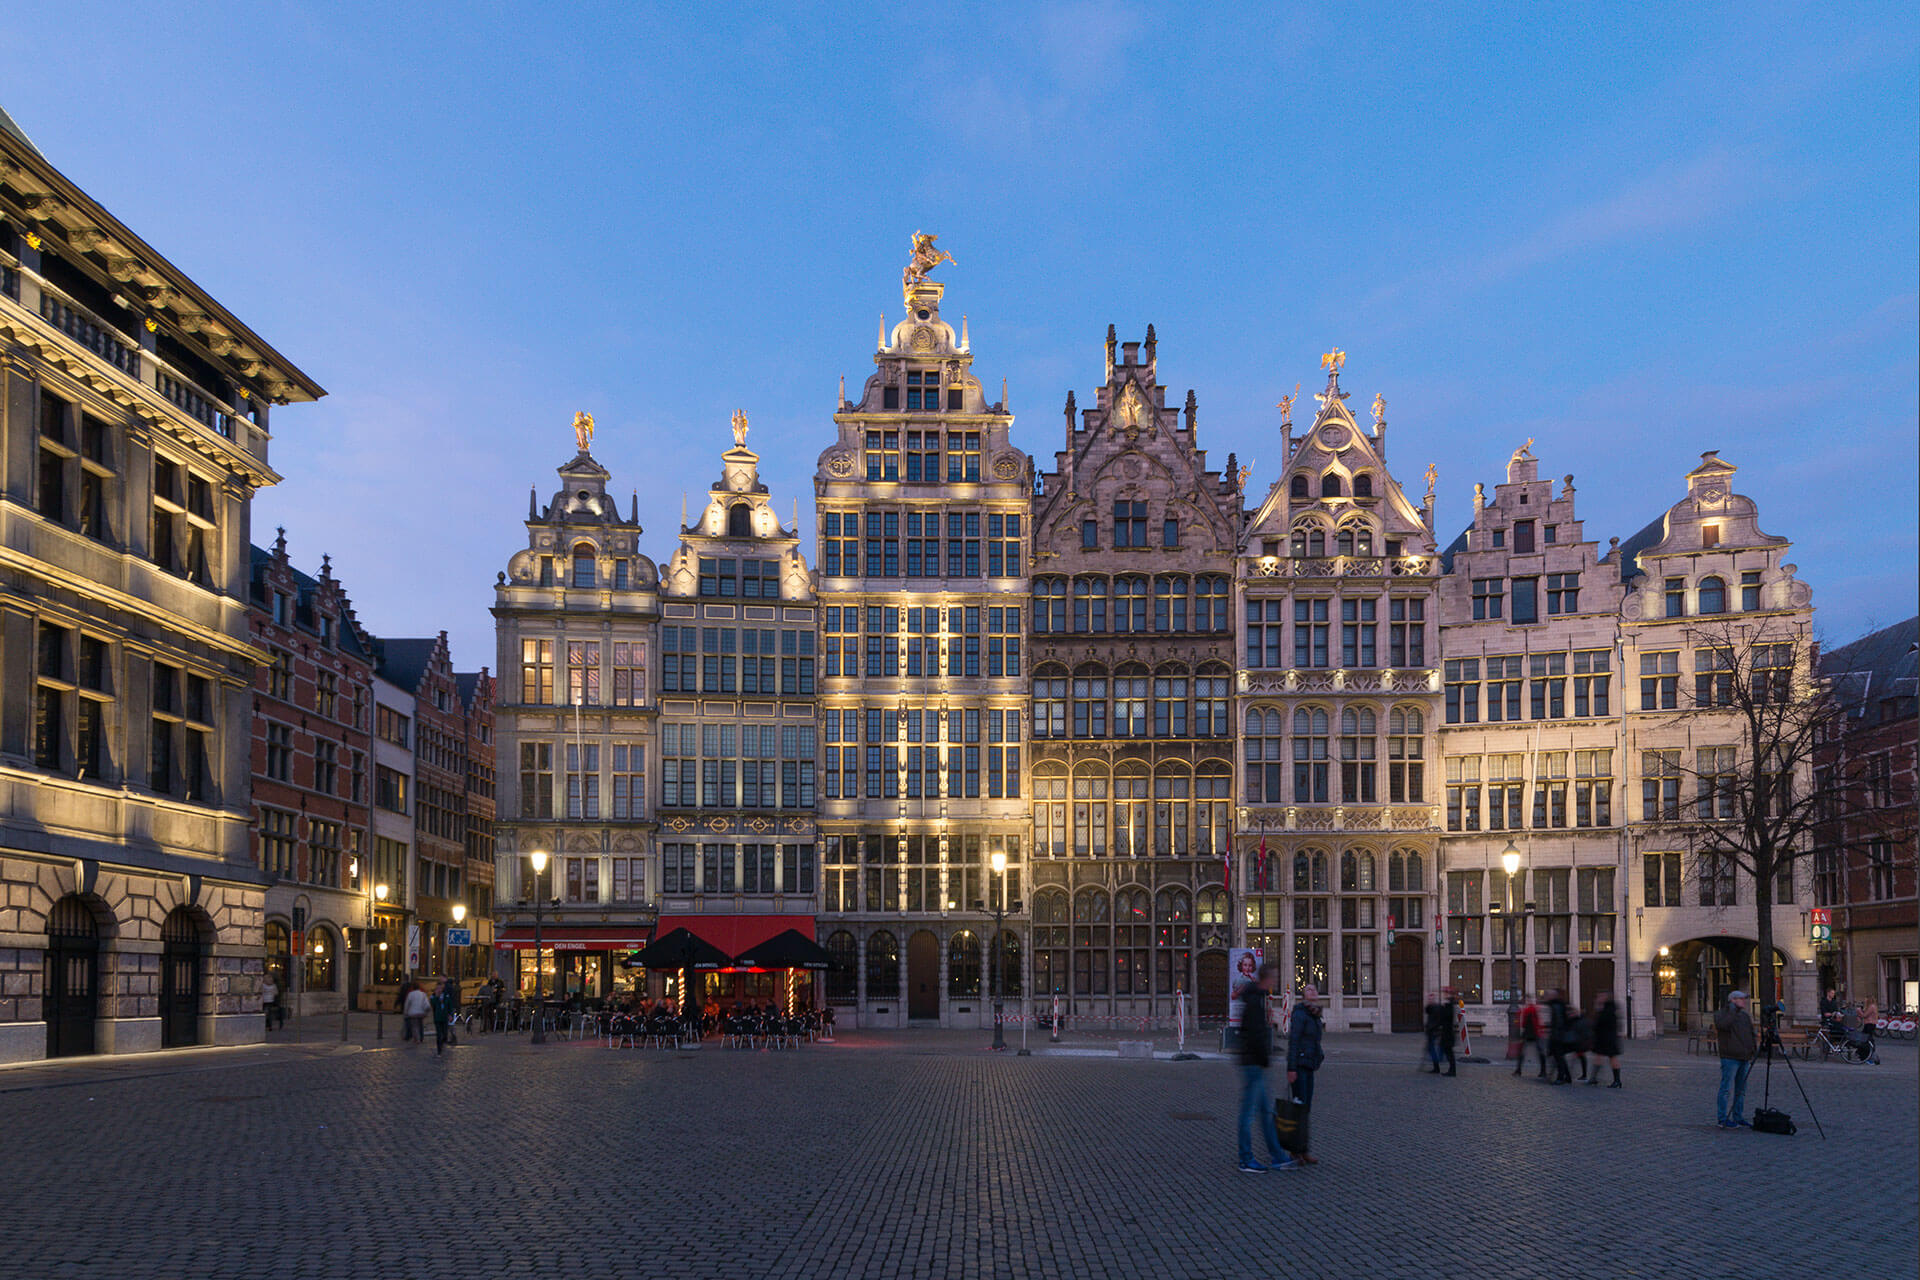 SCULPline floodlights bathe the façades of Grote Markt with a warm white light